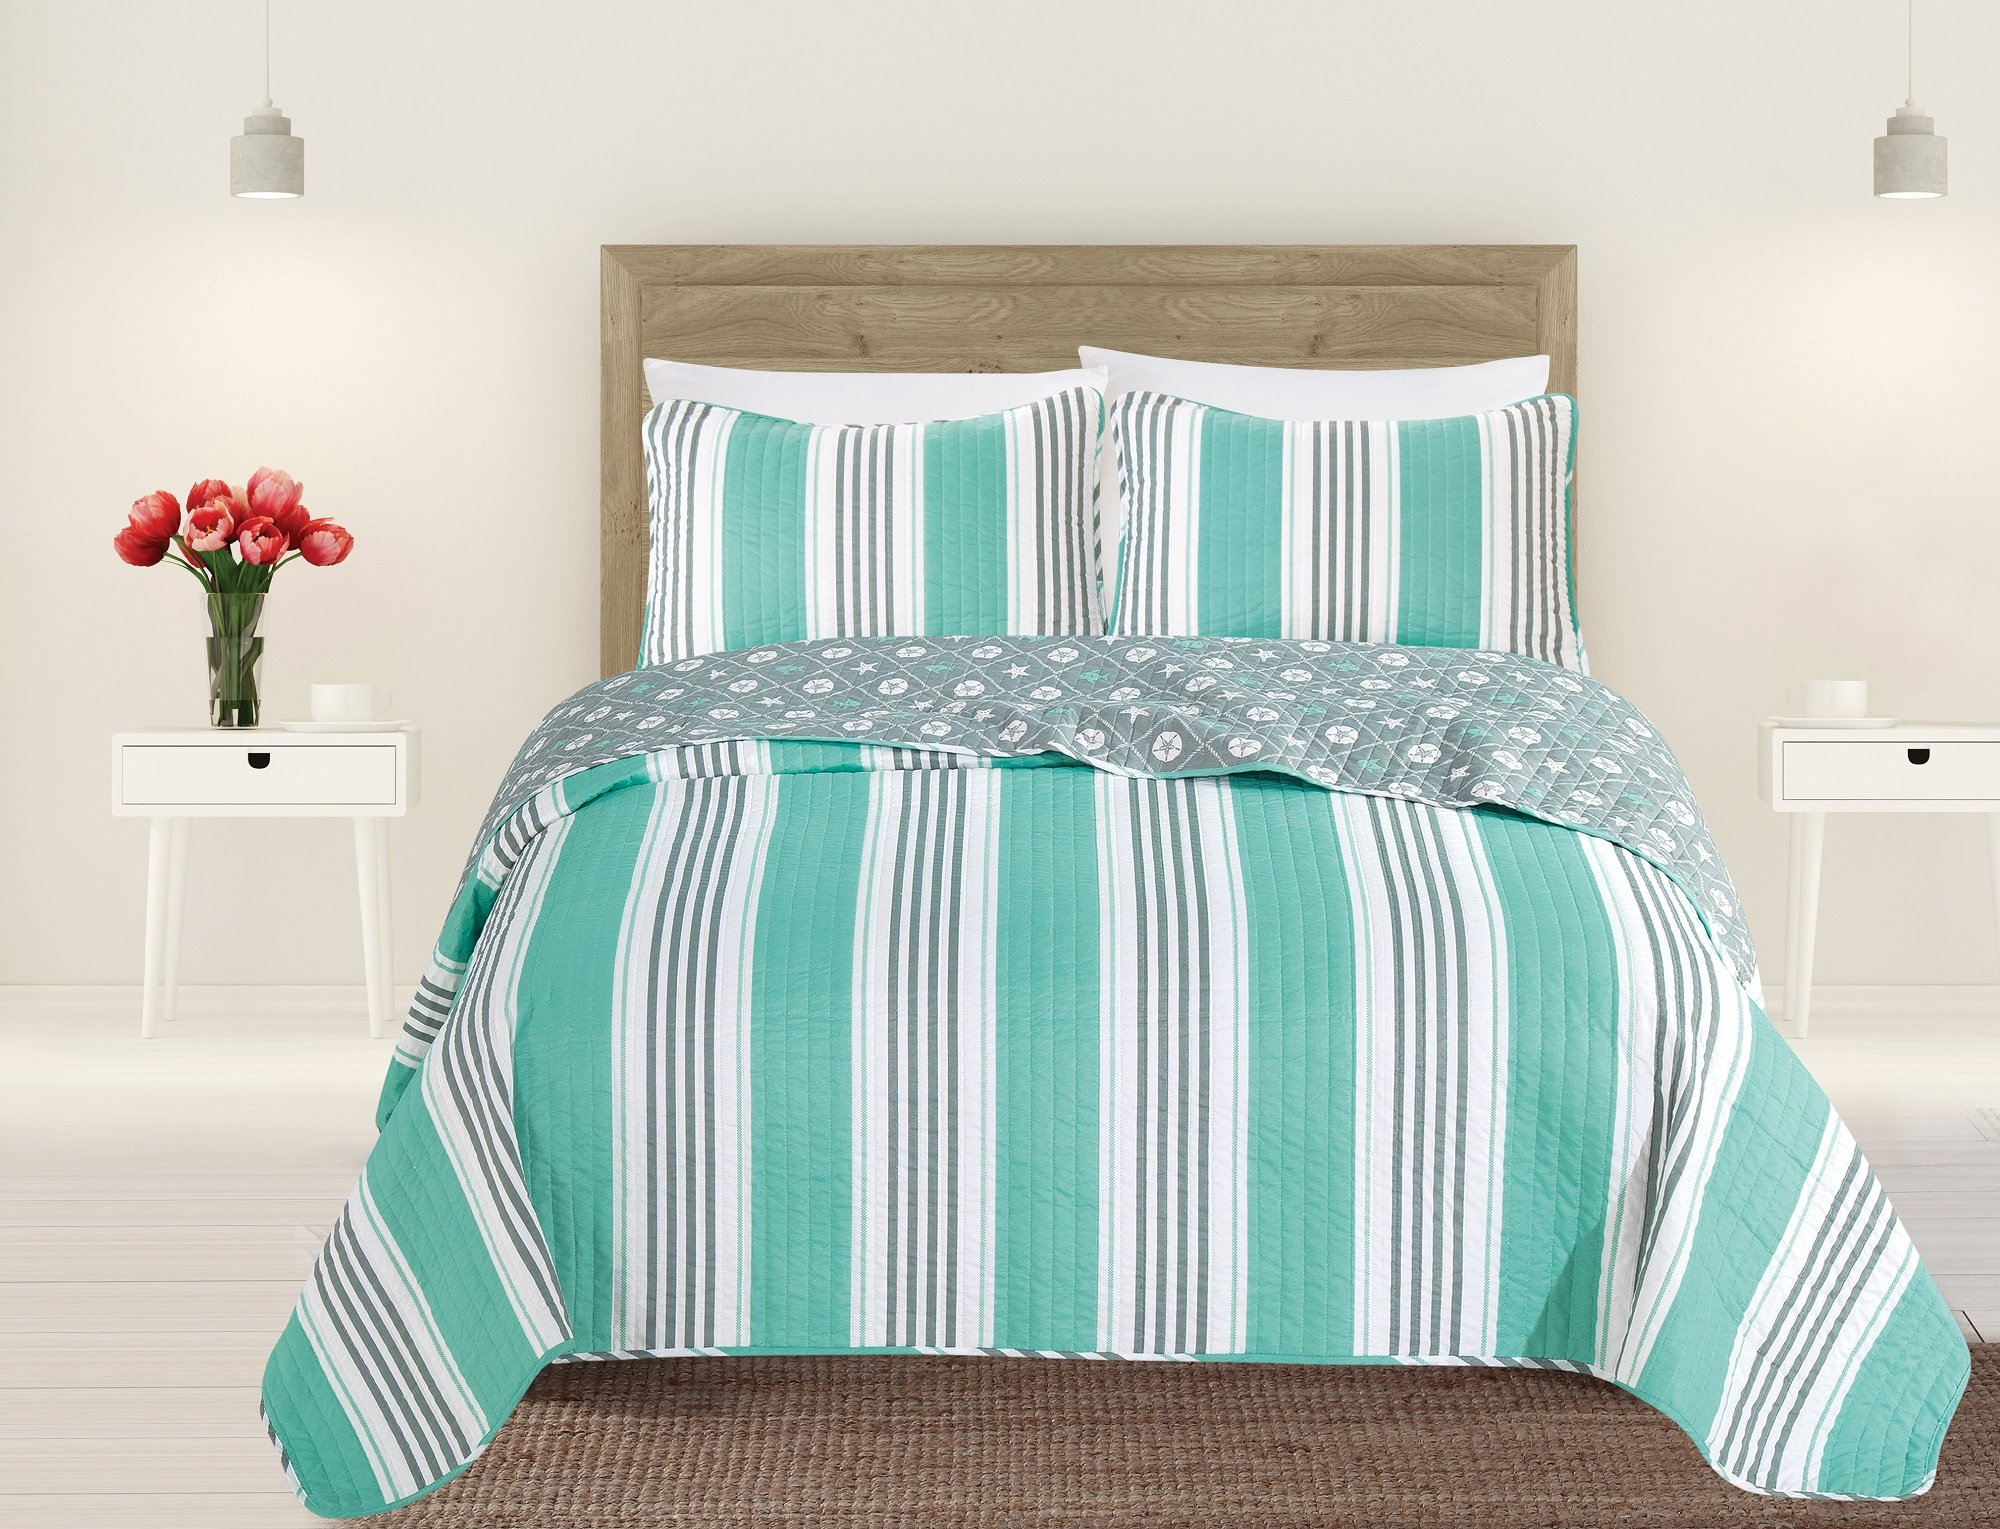 Great Bay Home 3-Piece Coastal Beach Theme Quilt Set with Shams. Soft All-Season Luxury Microfiber Reversible Bedspread and Coverlet. St. Croix Collection By Brand. (Twin, Aqua/Grey)